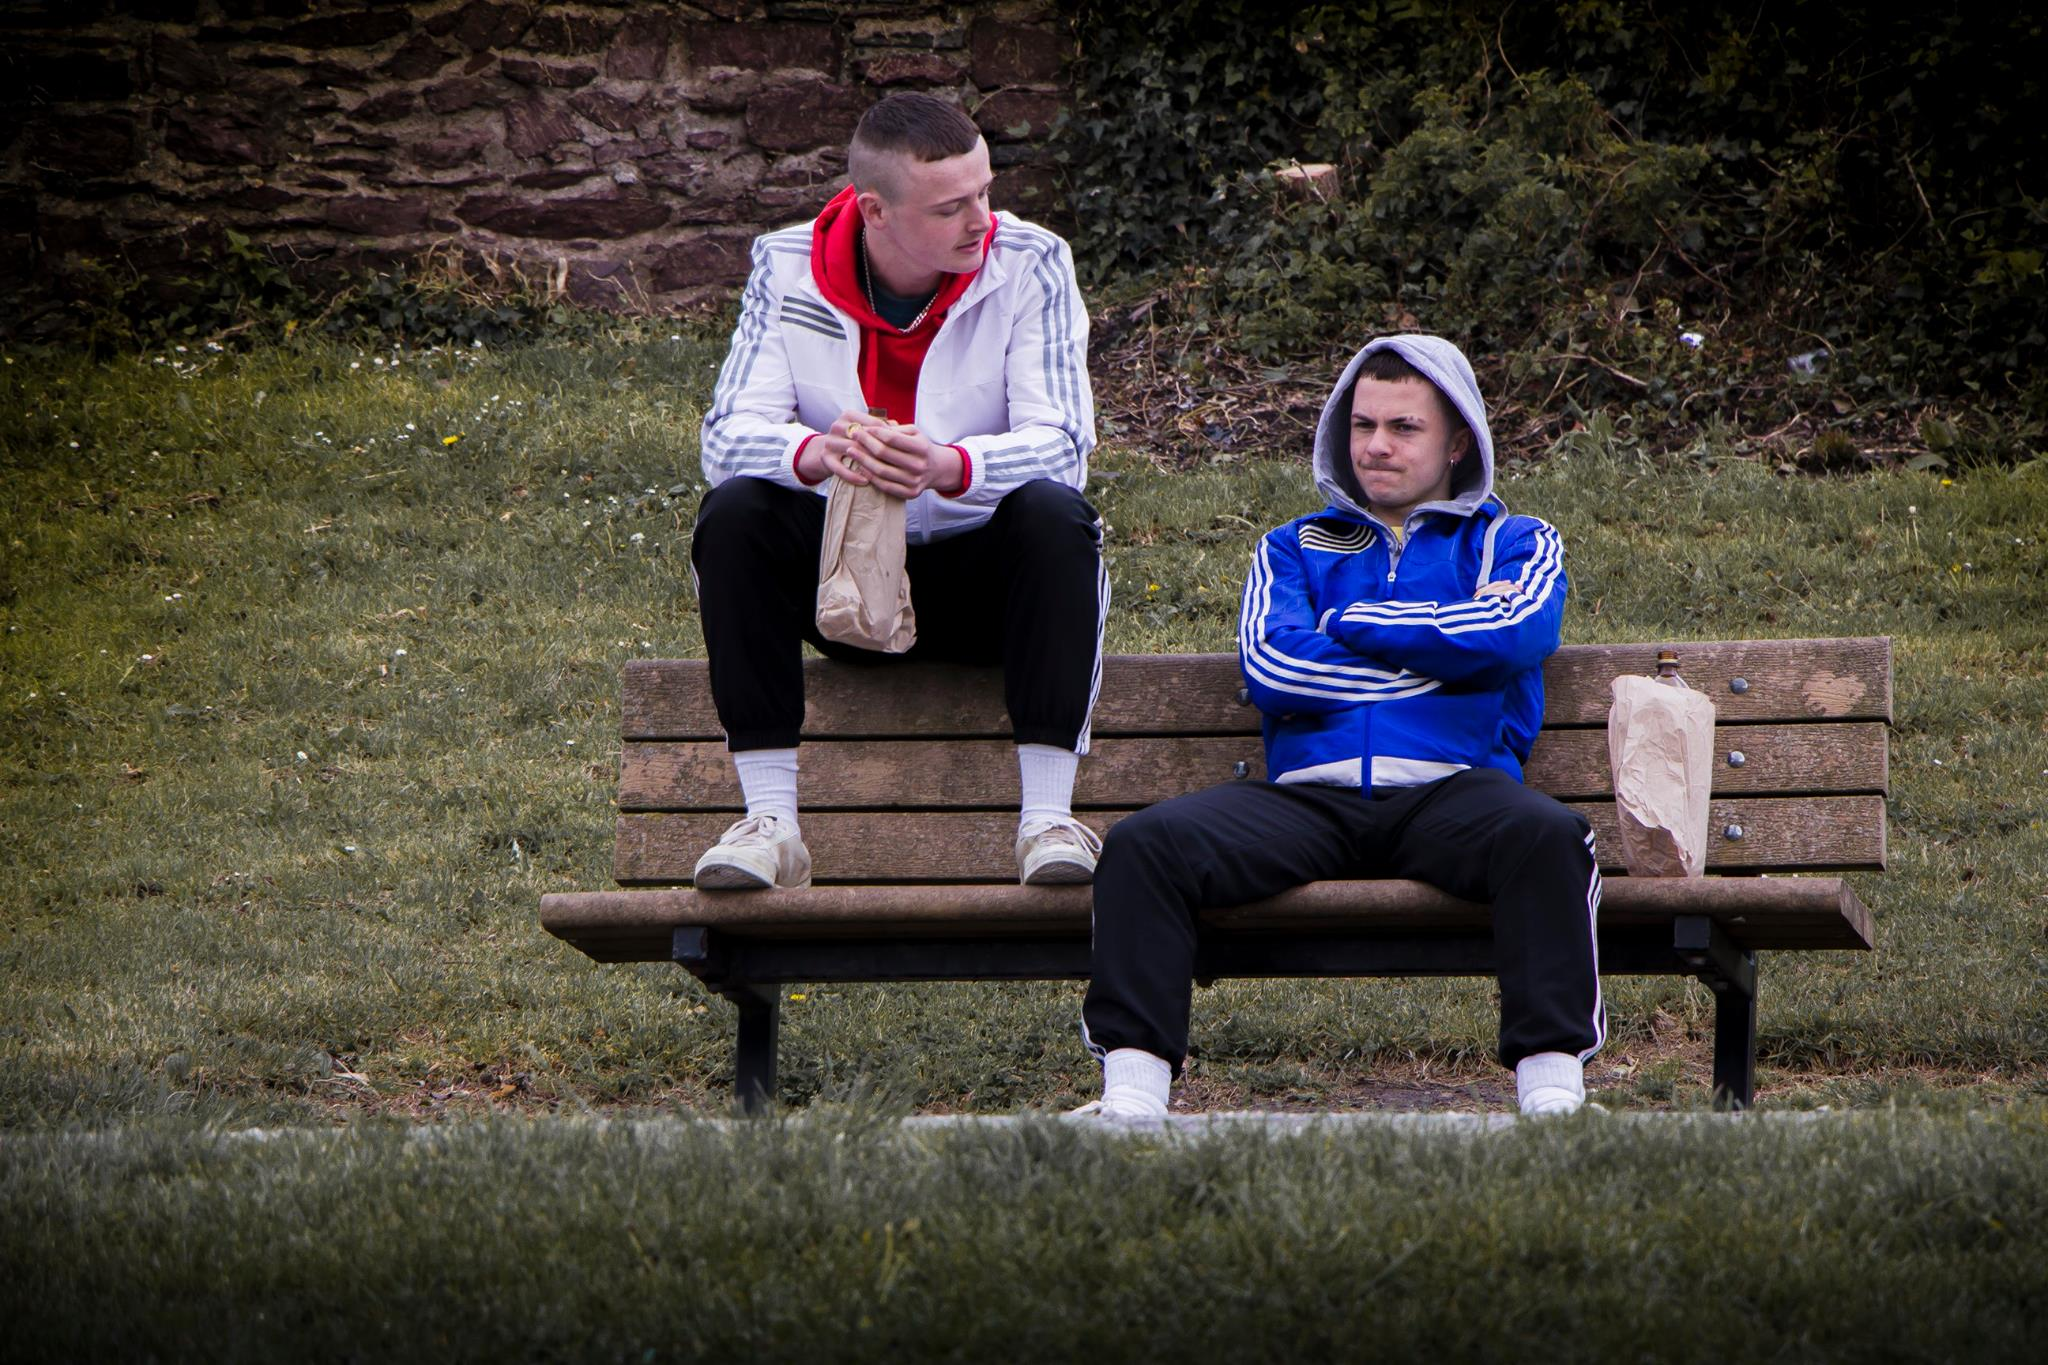 The young offenders image 2